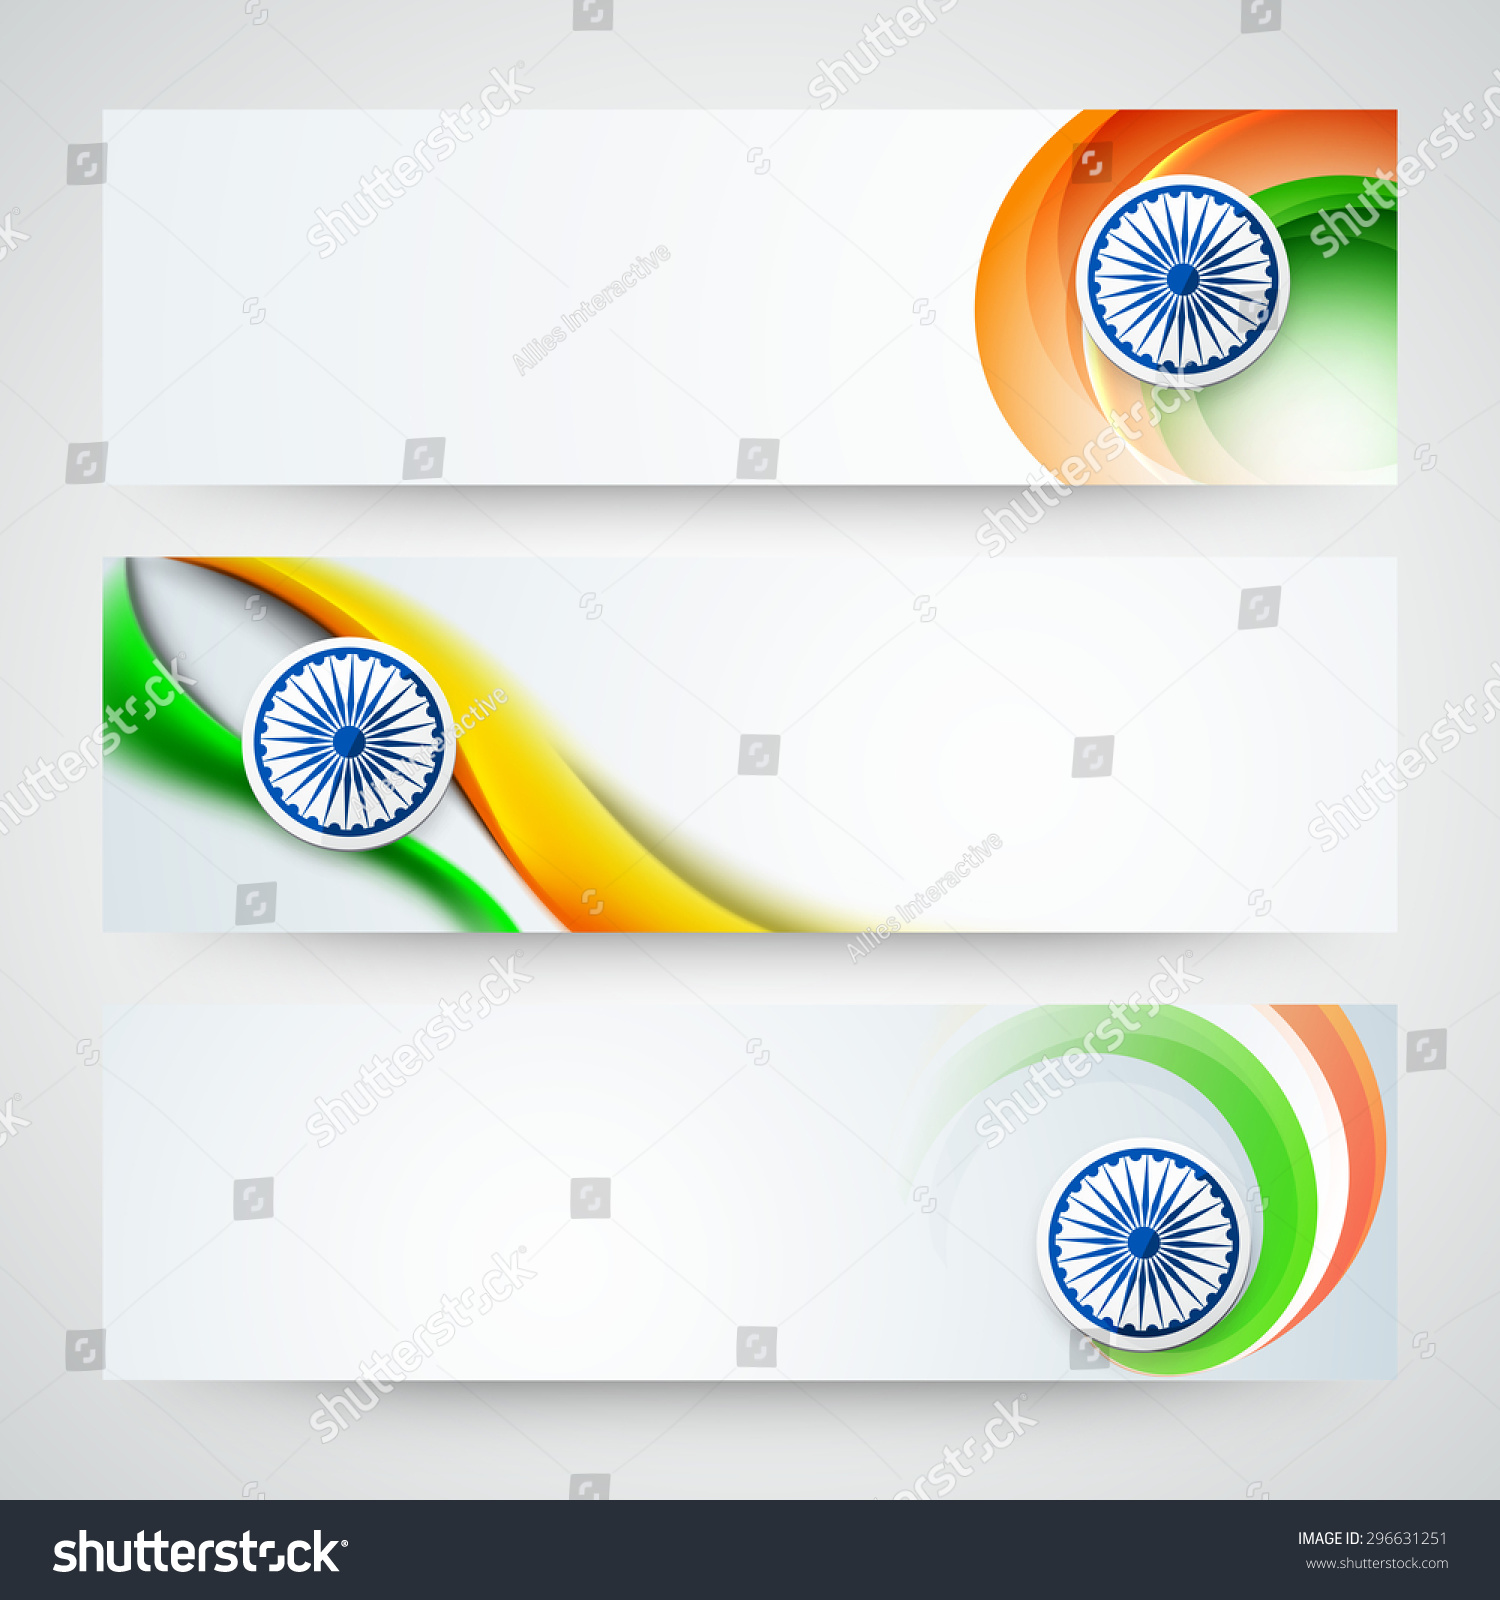 Colors website ashoka - Glossy Website Header Or Banner Set With Ashoka Wheel And National Flag Color Waves For Indian